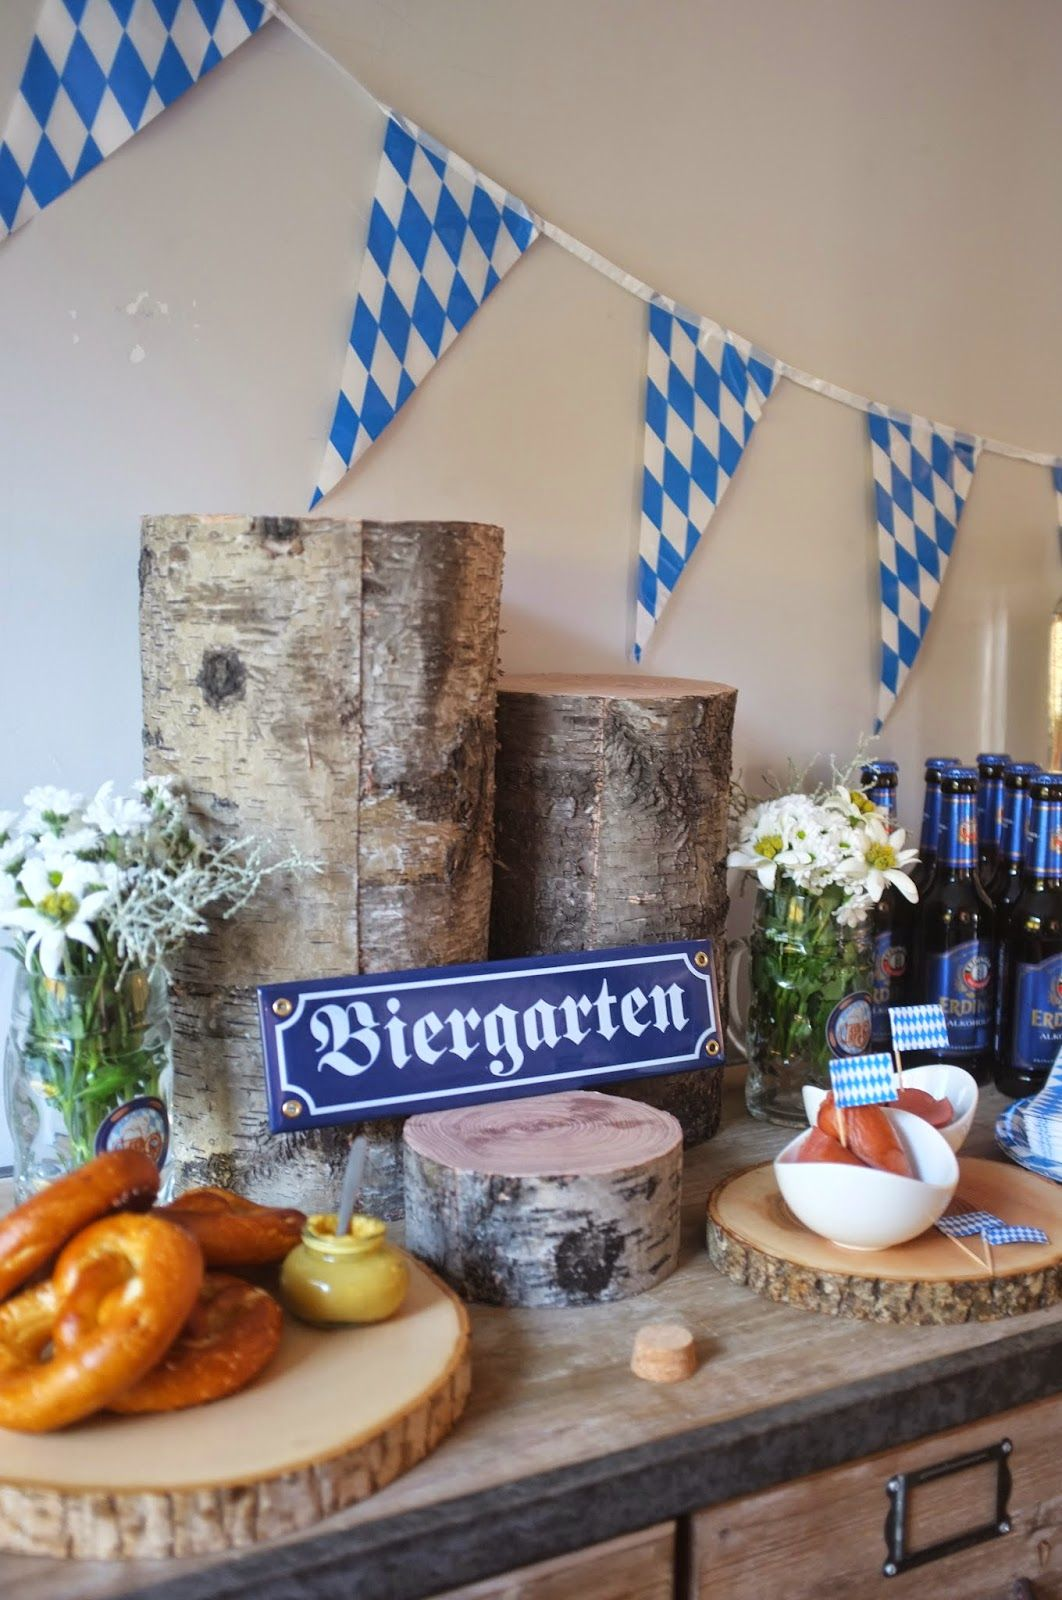 oktoberfest food oktoberfest pinterest oktoberfest deko bayrisch und oktoberfest. Black Bedroom Furniture Sets. Home Design Ideas